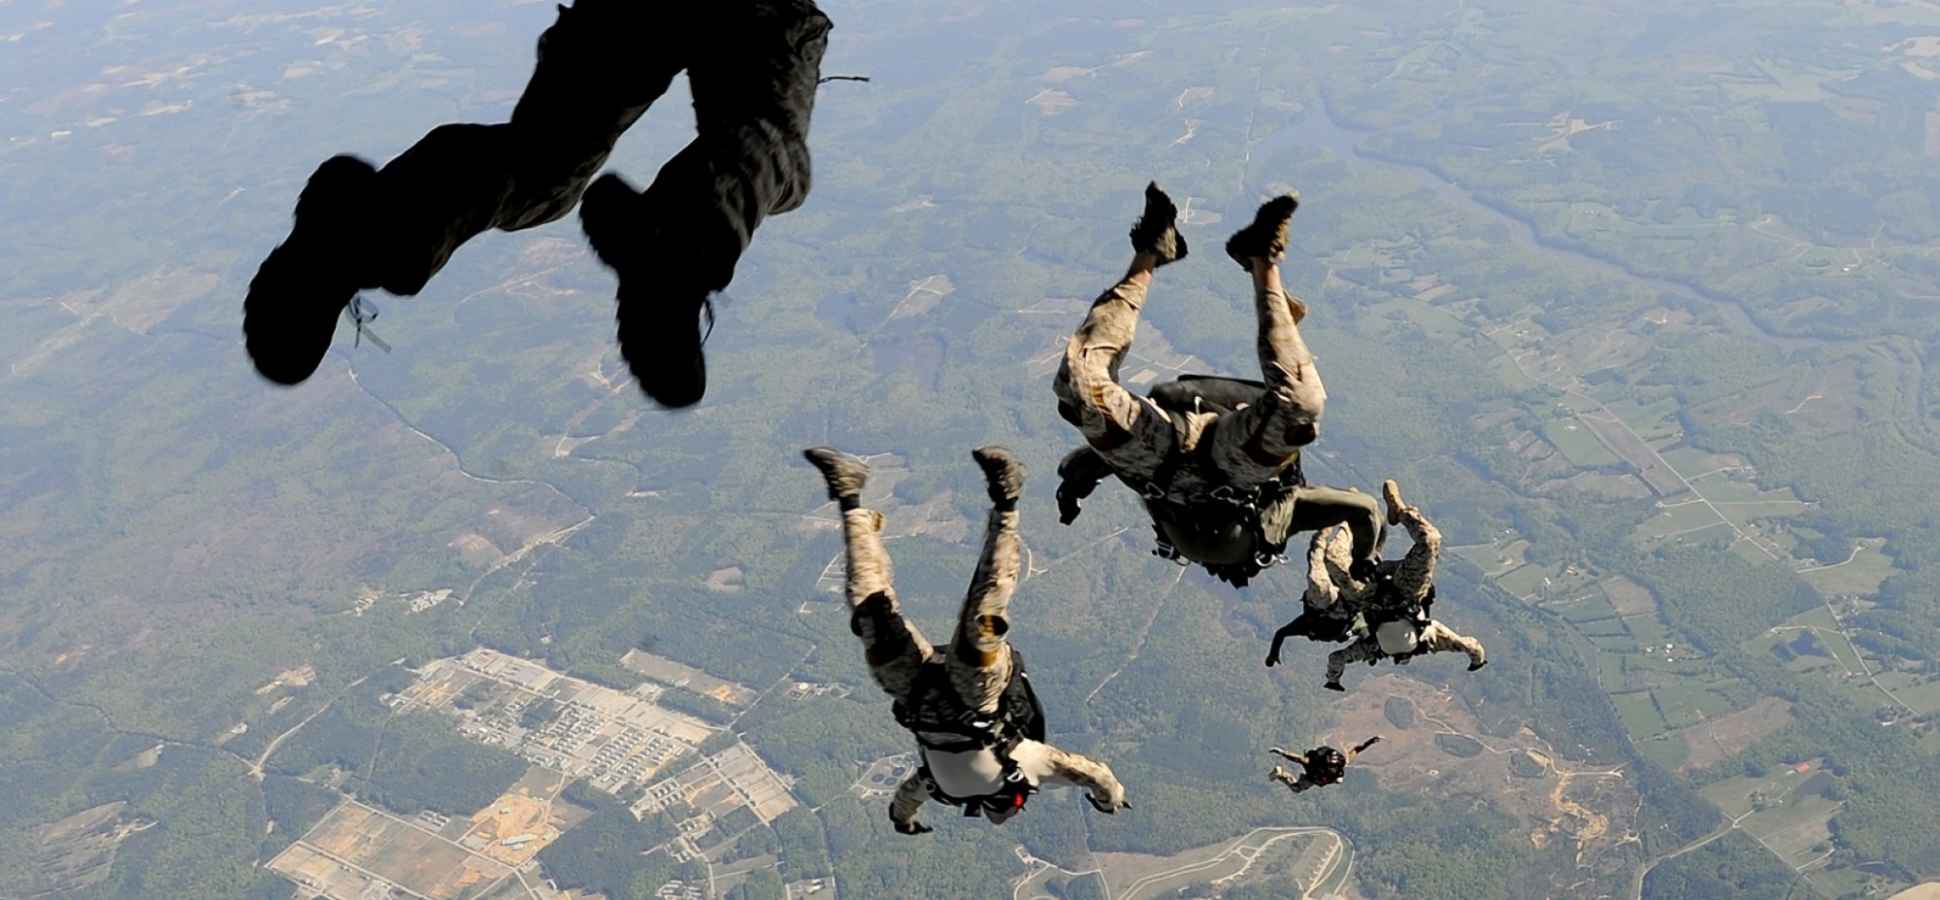 1 Reason Why Most People Fail, According to a Former Navy SEAL